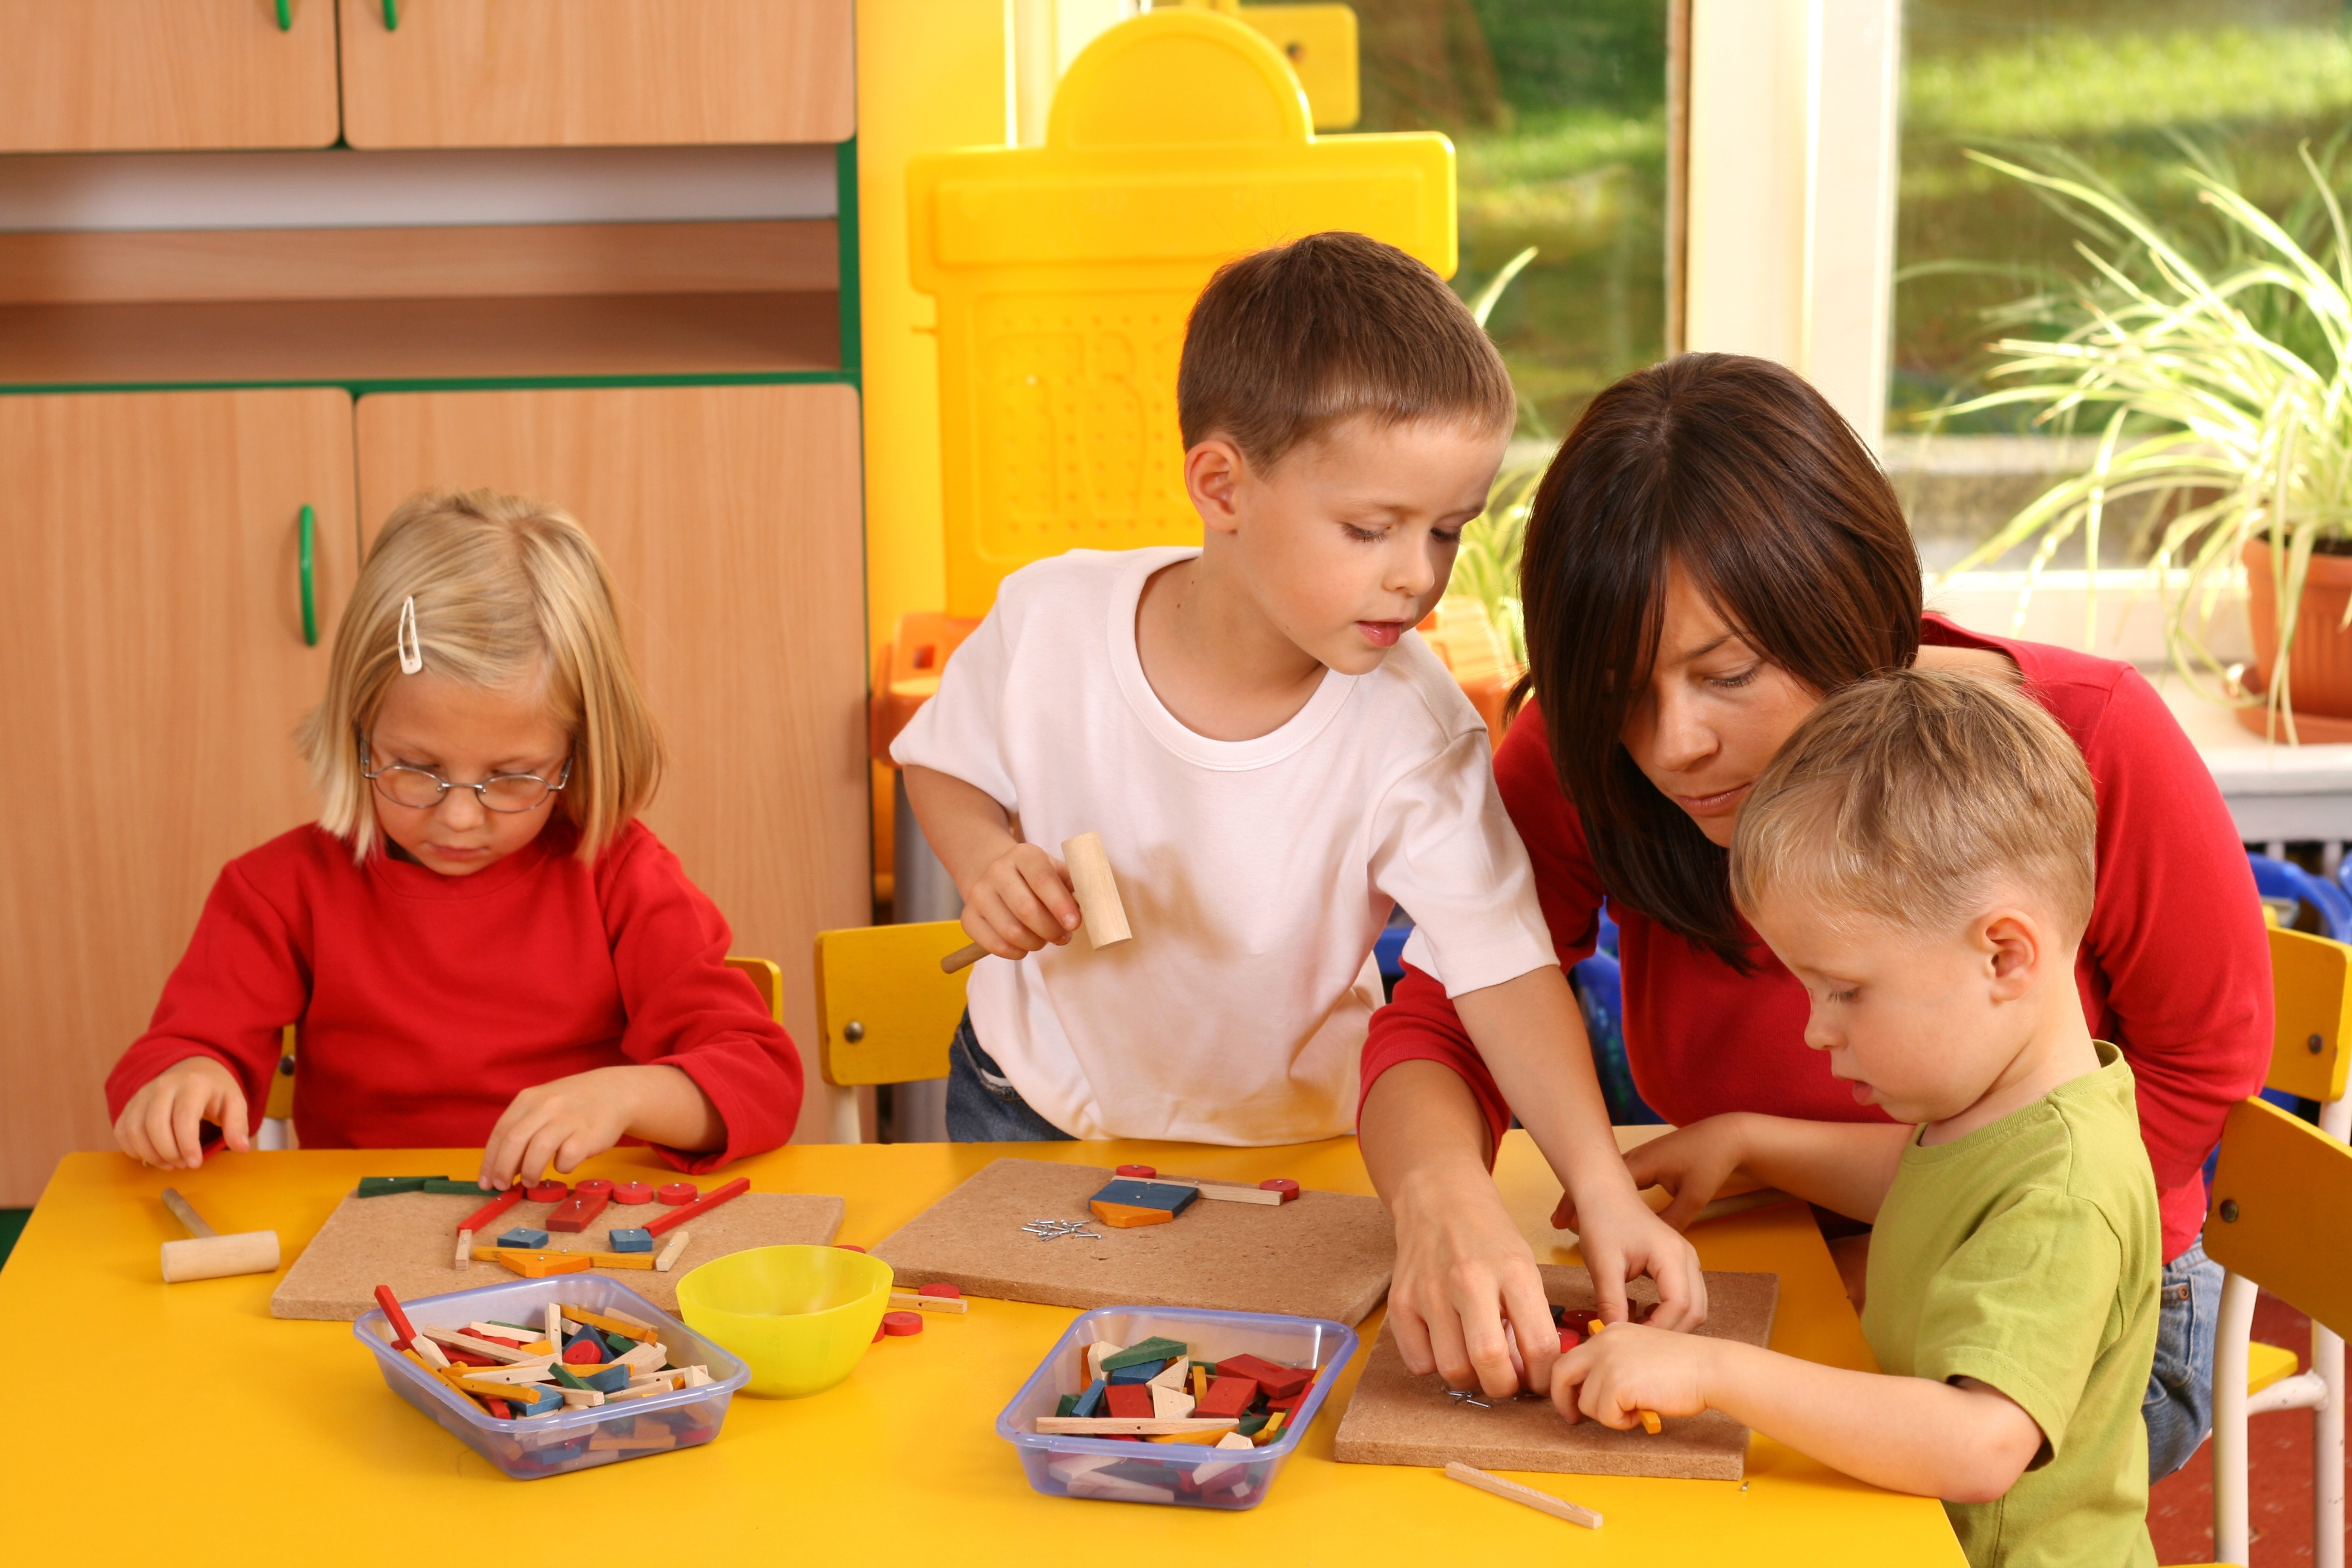 Child Development Theorists And Learning Theories